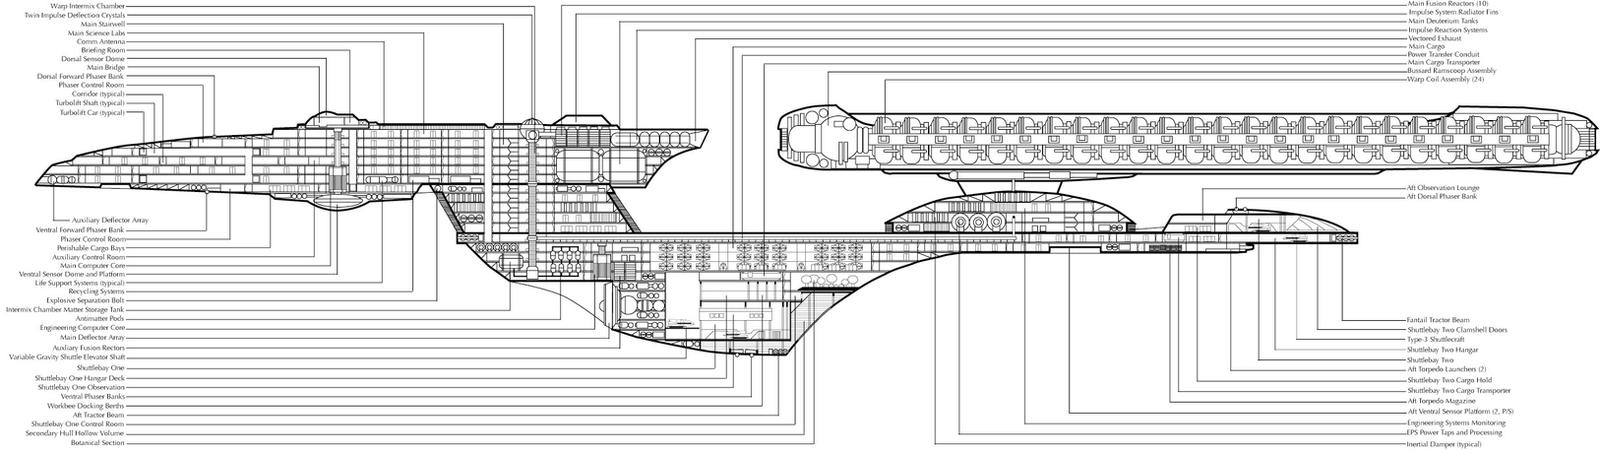 Uss Excelsior Cross Section By Chimera335 On Deviantart